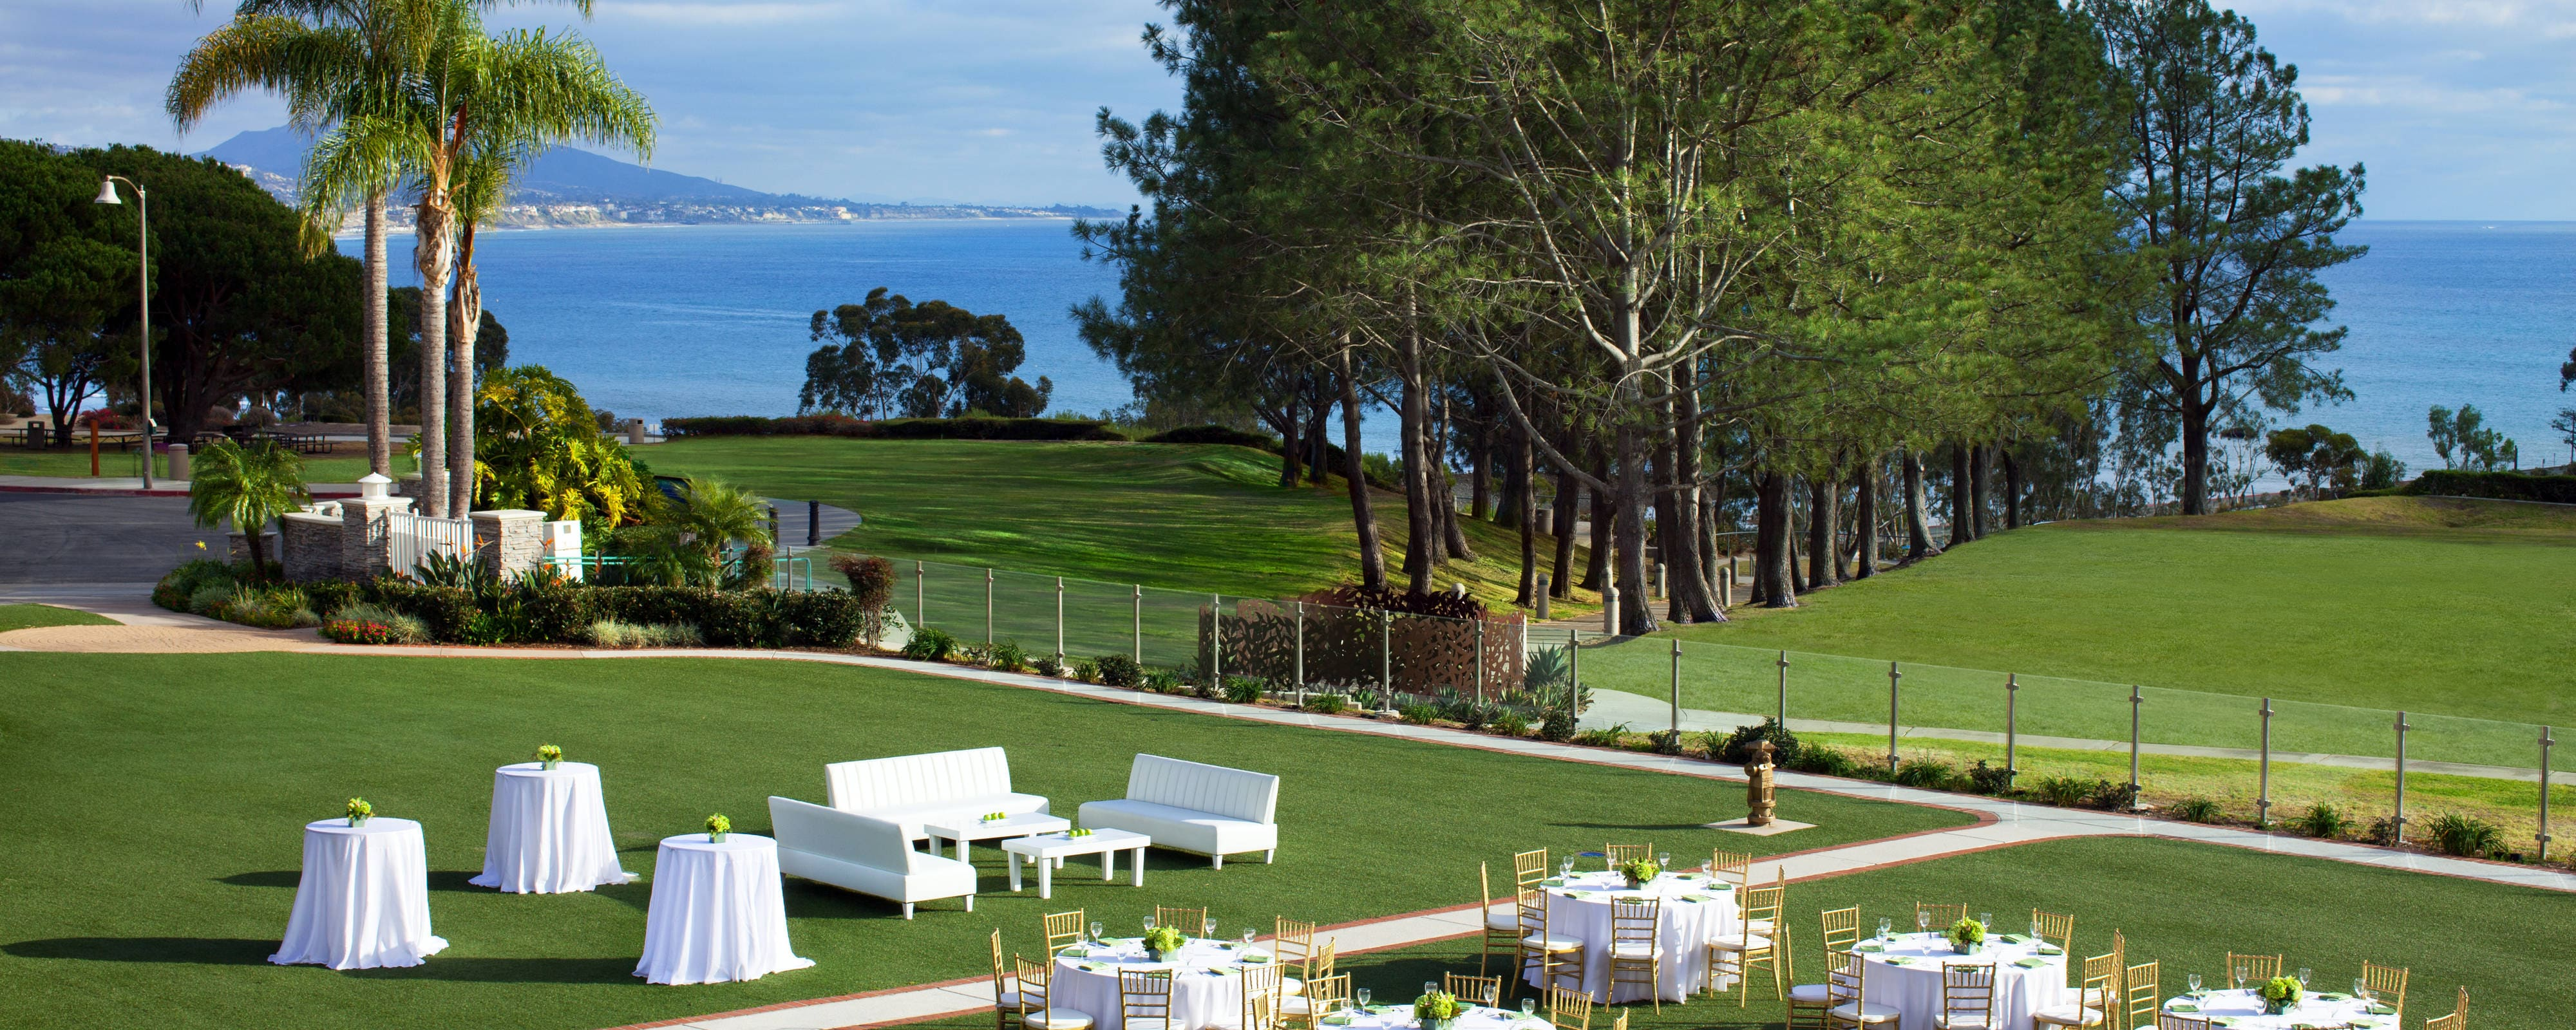 Laguna Cliffs Outdoor Event Space